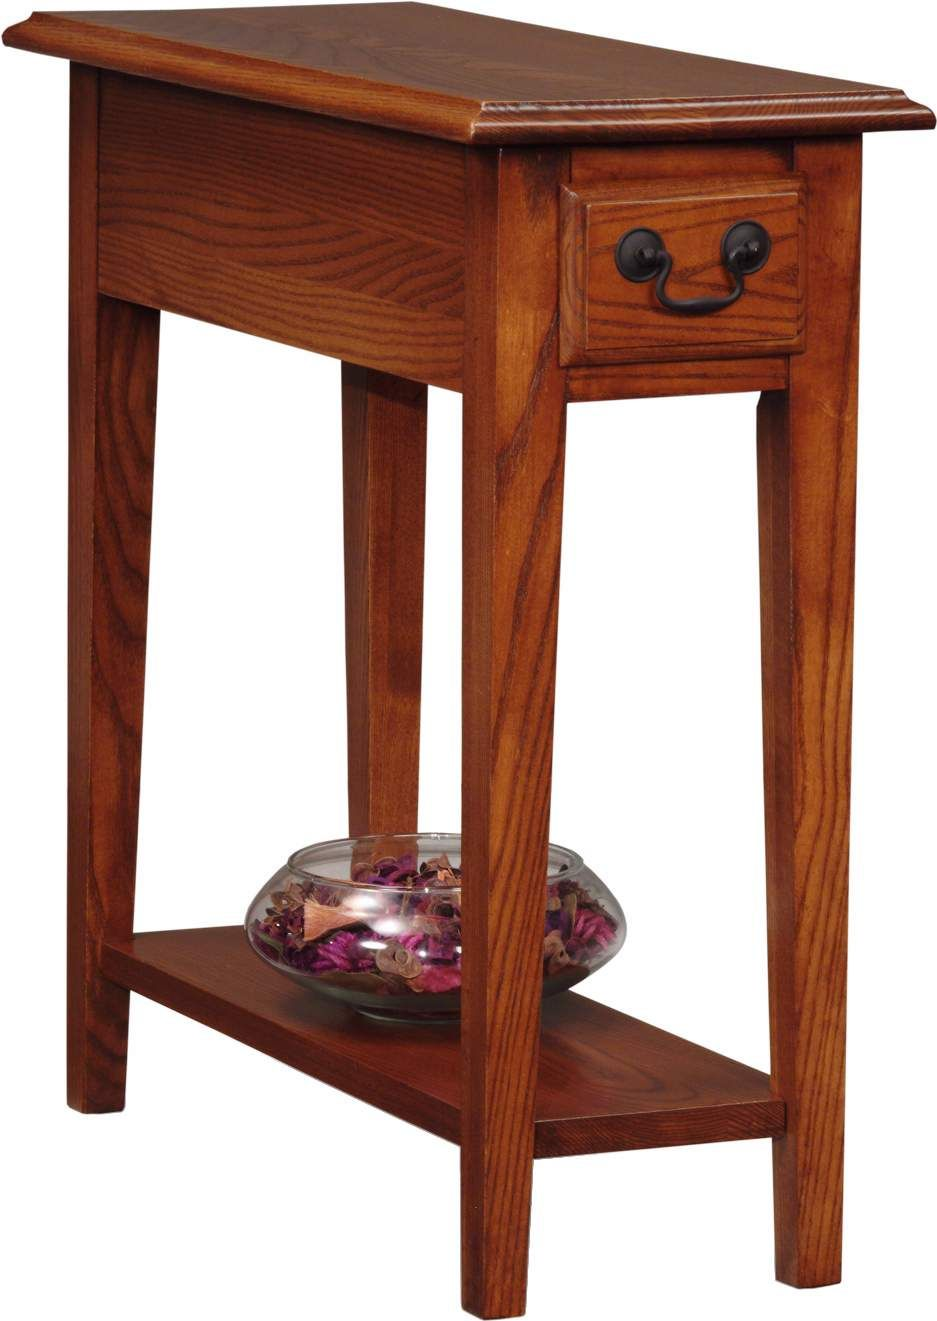 Tables Favorite Finds 10 Wide Oak Wood Side Table Side Table Wood End Tables With Storage End Tables